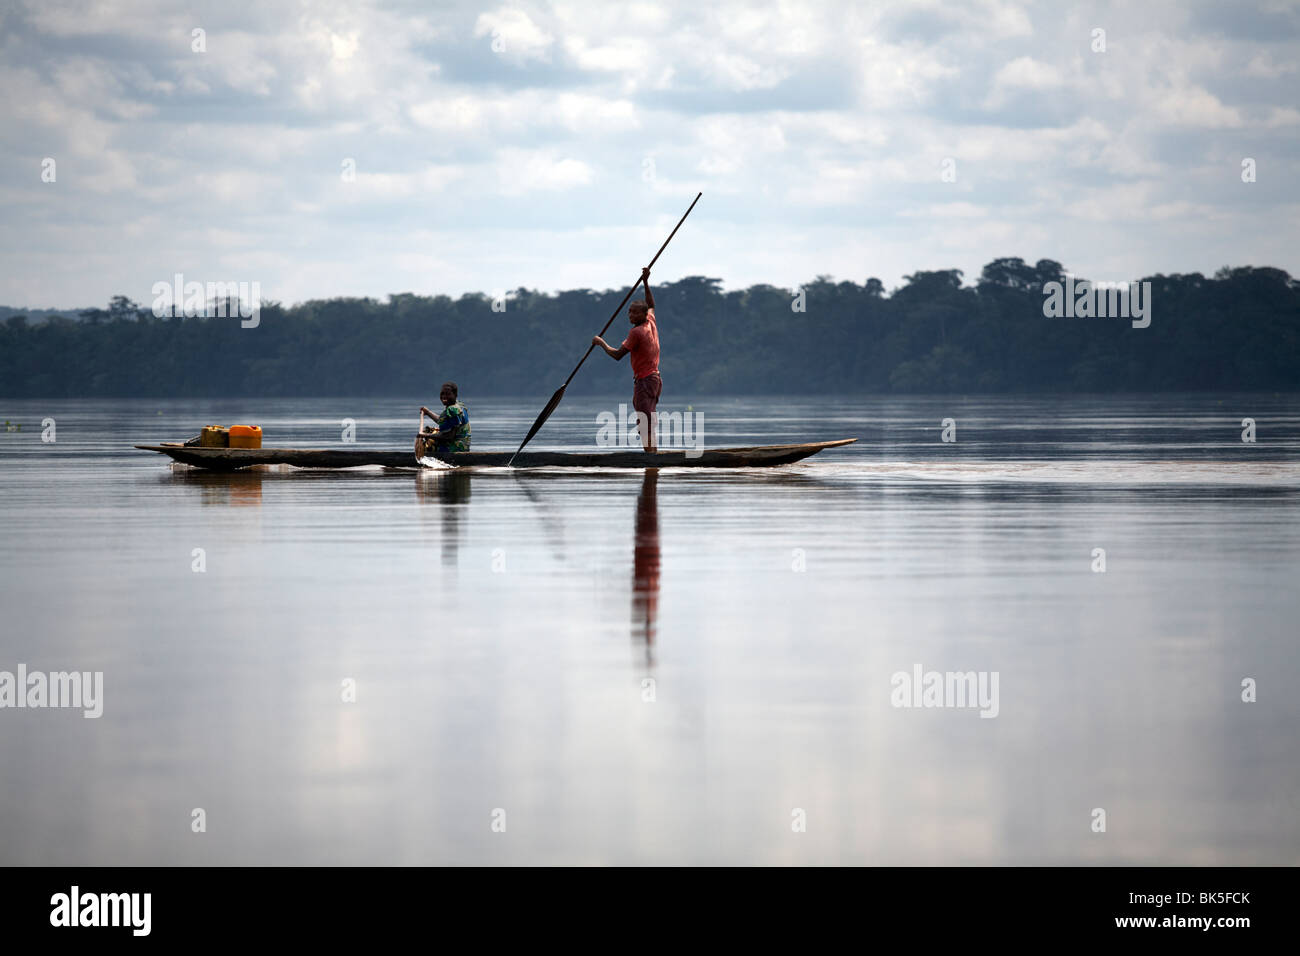 River traffic on the Congo River, Democratic Republic of Congo, Africa - Stock Image